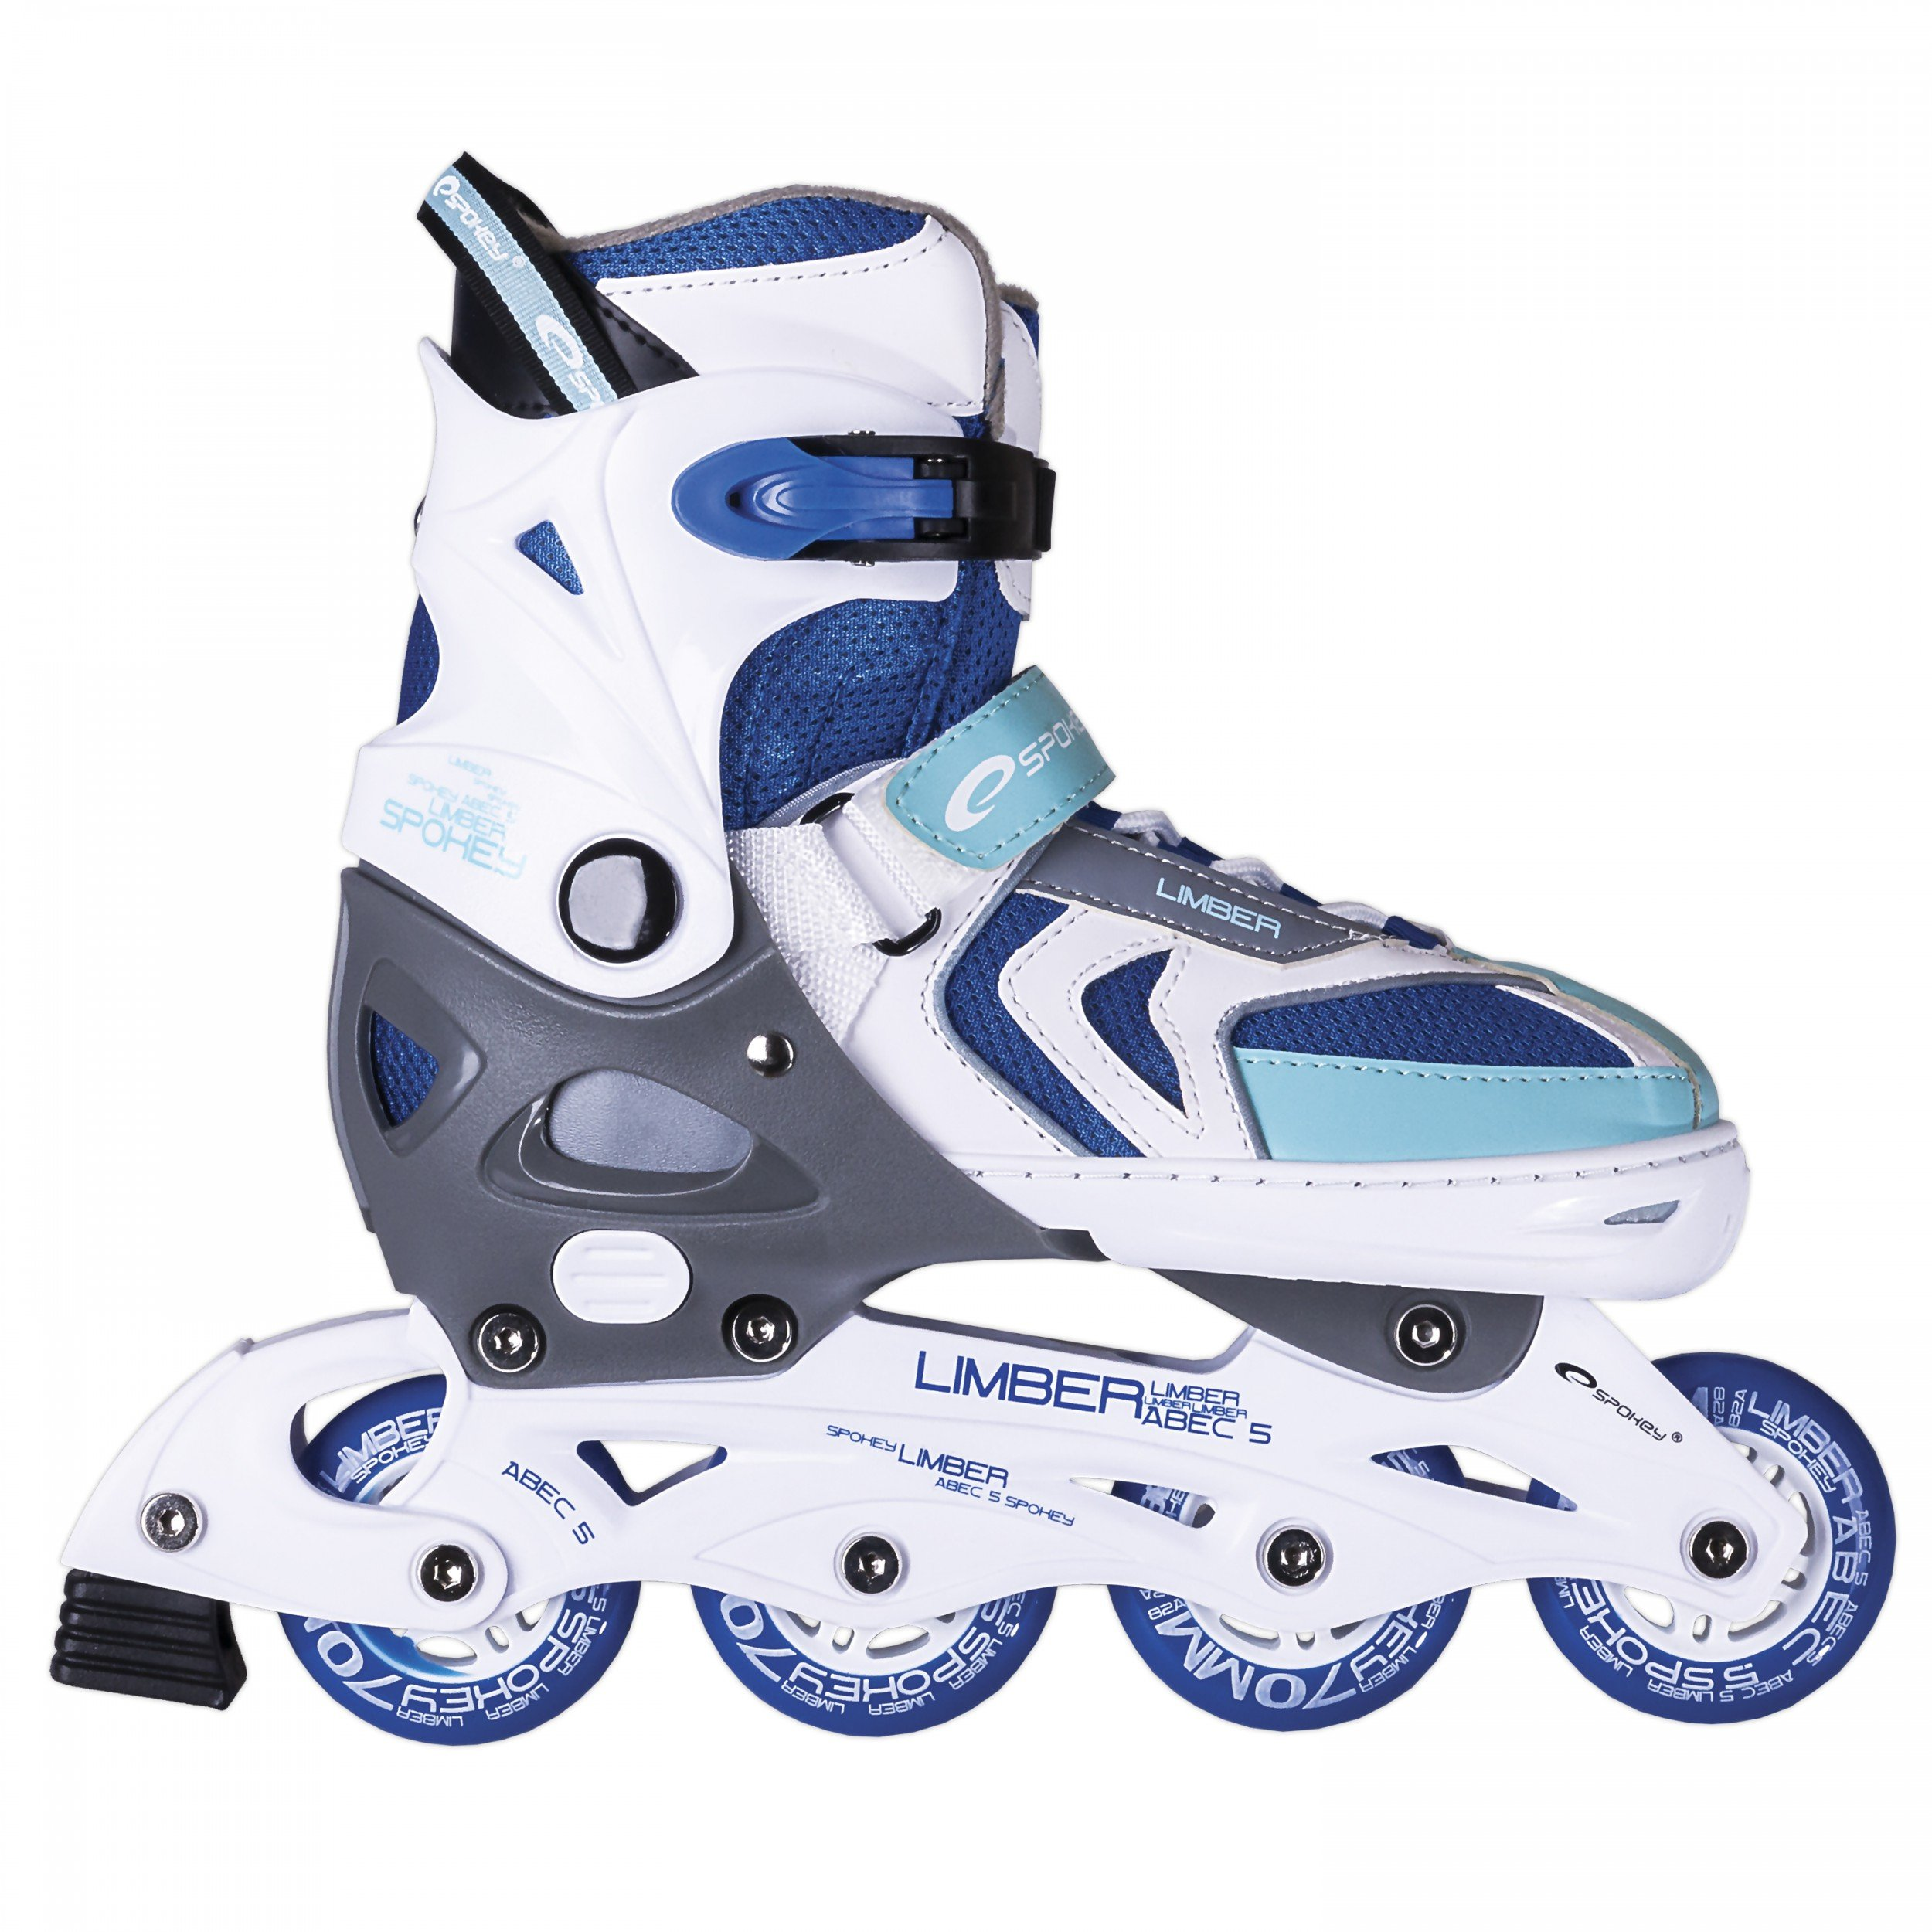 Skates for Kids Youths Sizes Adjustable ABEC 7 Carbon Spokey